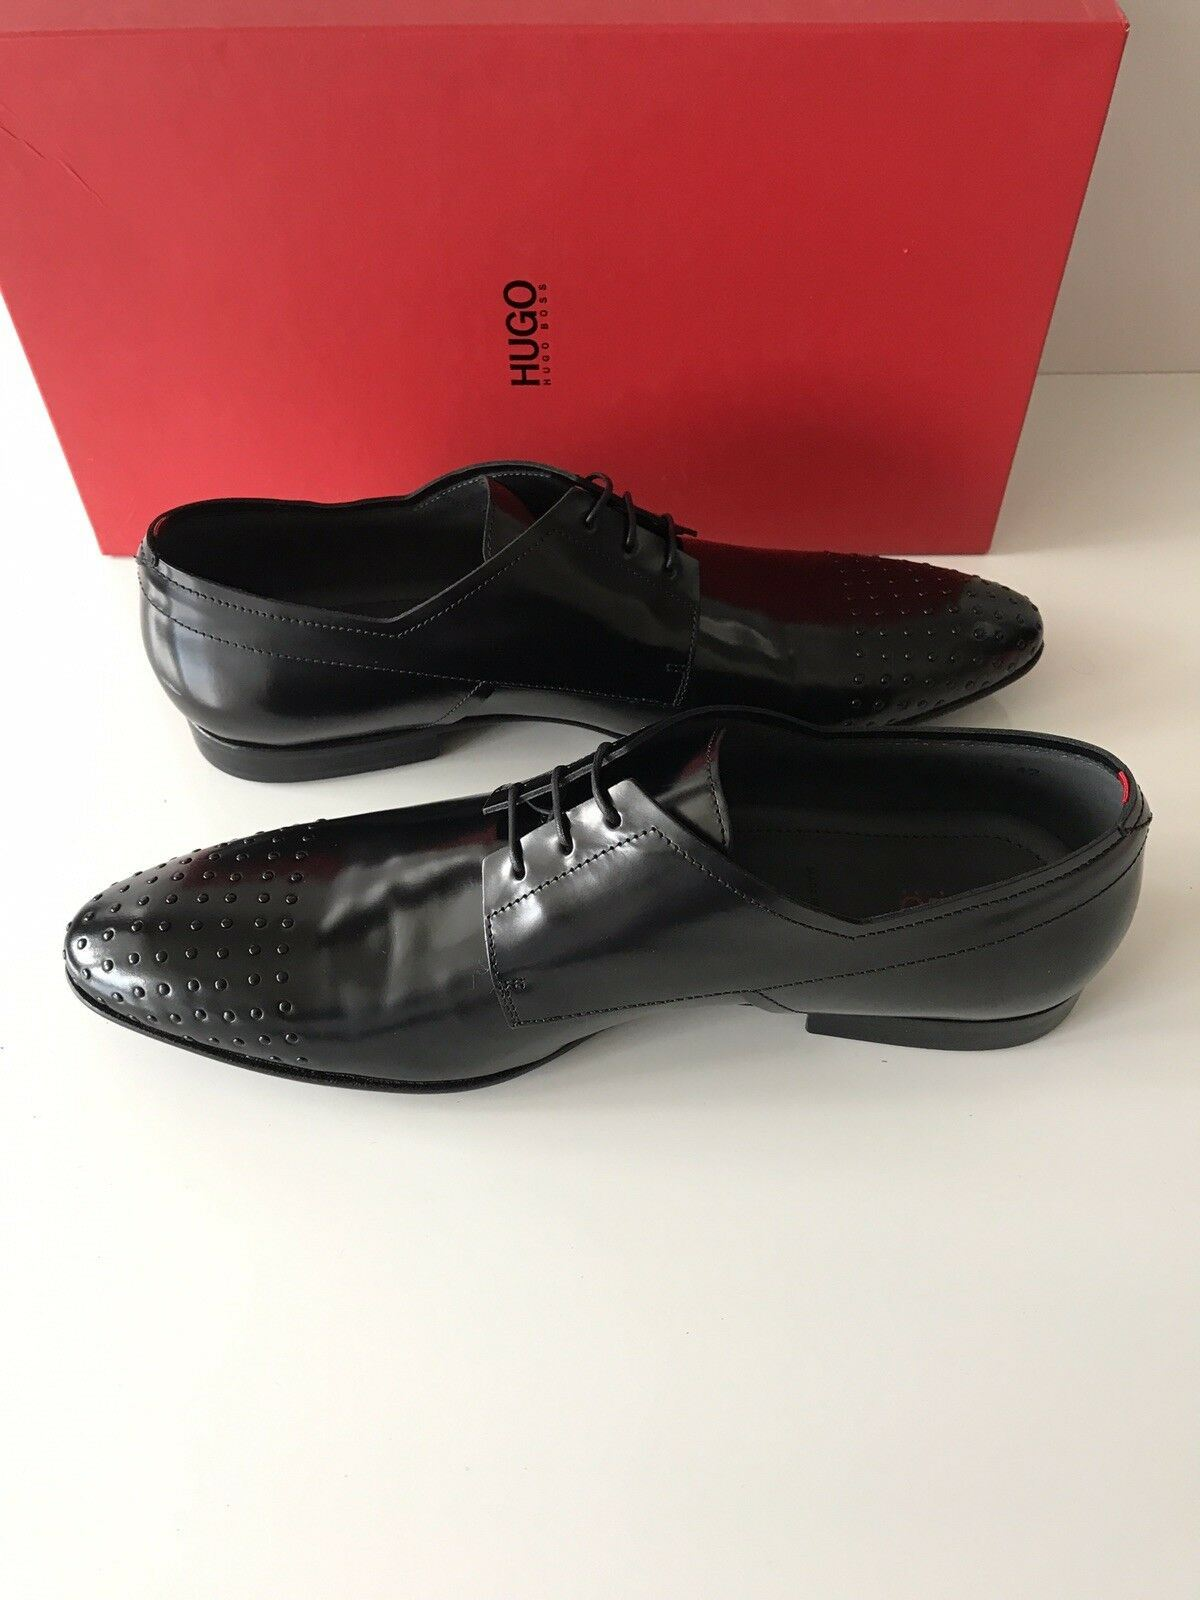 NIB $415 Boss Hugo Boss Drestuds Mens Oxford Black Leather Shoes 9 US Italy